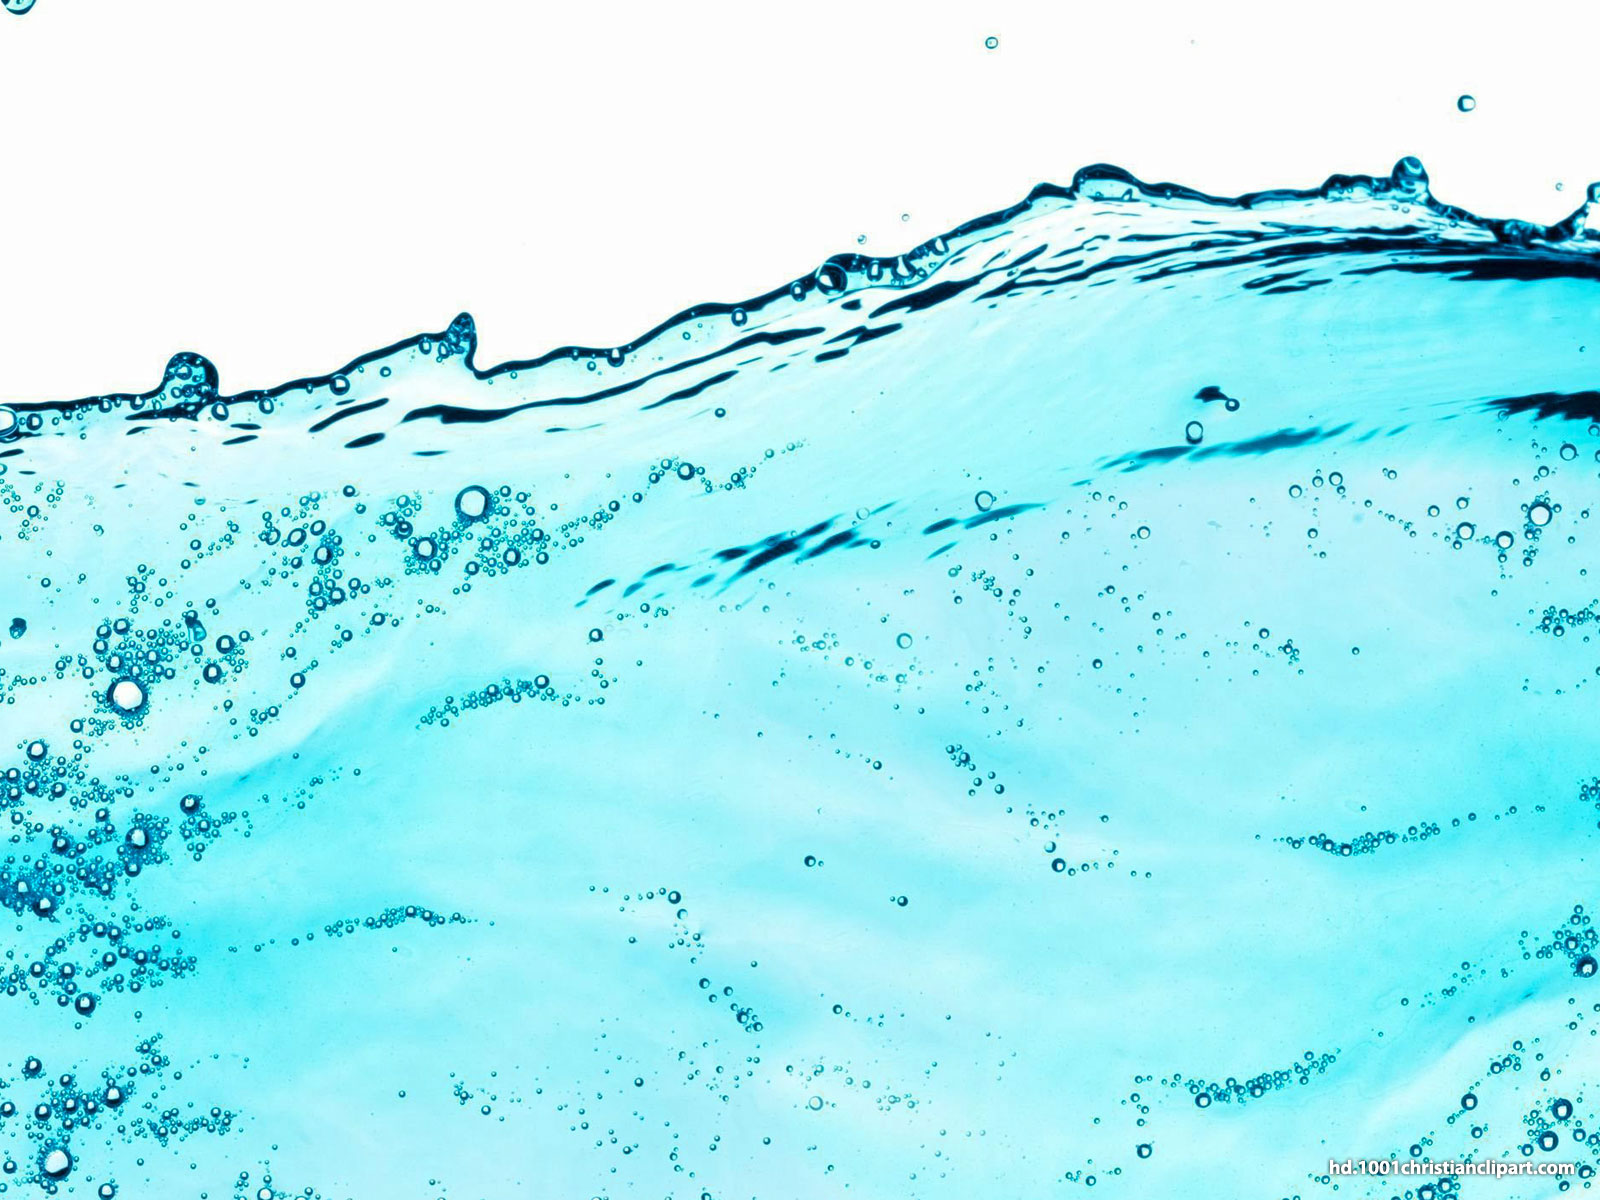 Blue Water clipart background powerpoint Blue HDR Backgrounds Blue Water